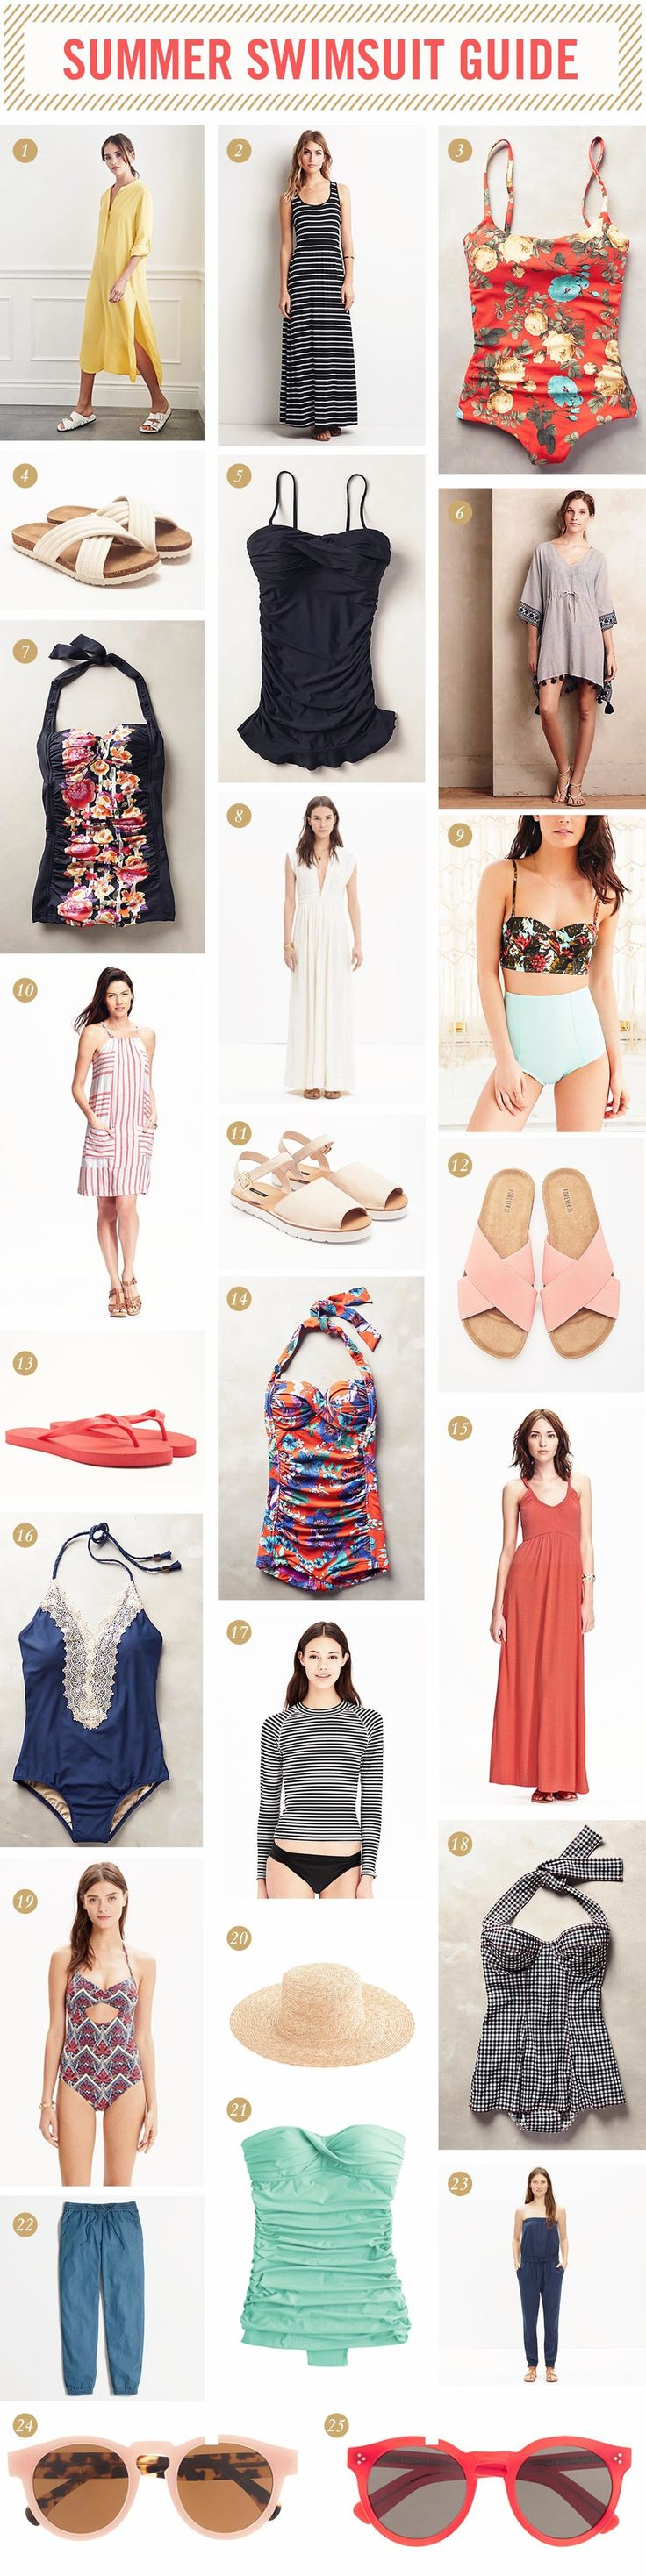 2015 Summer Swimsuit Guide — West Coast Capri